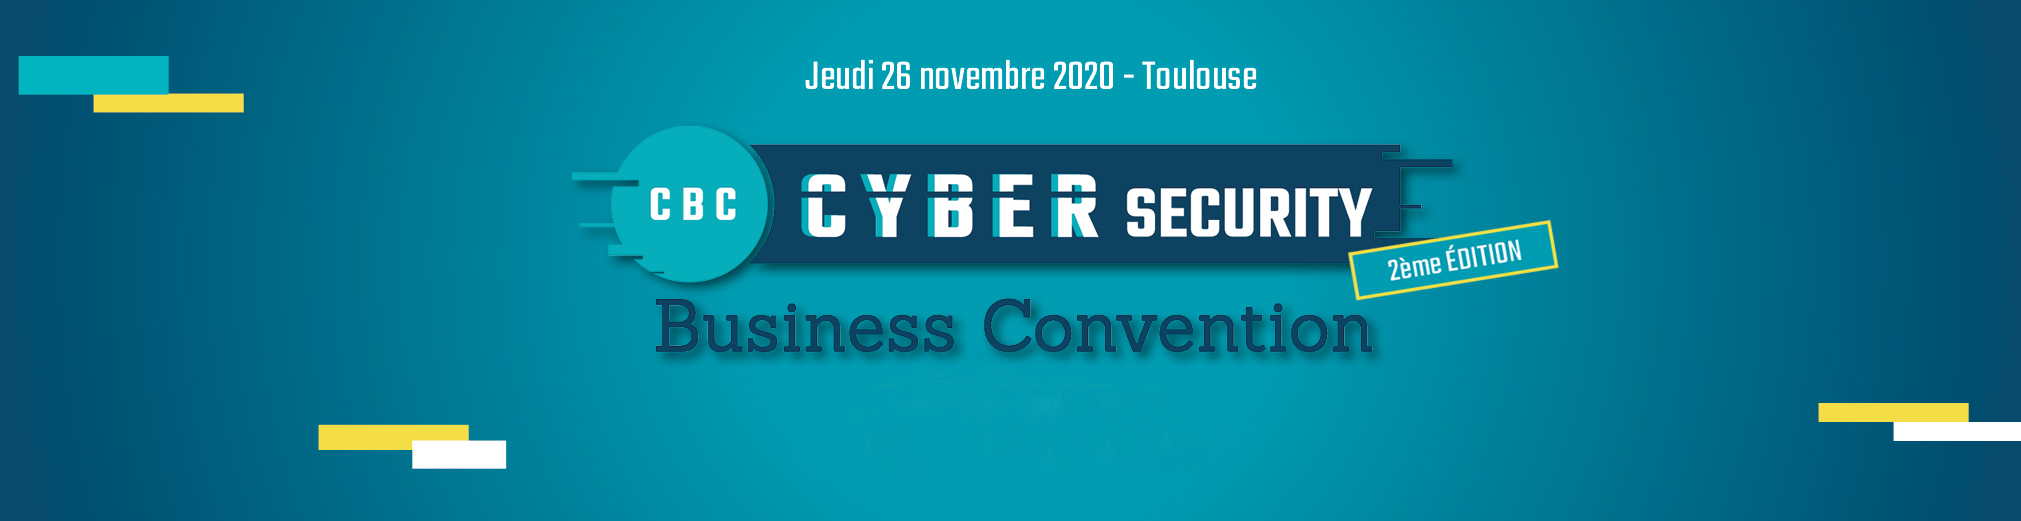 Cybersecurity Business Convention